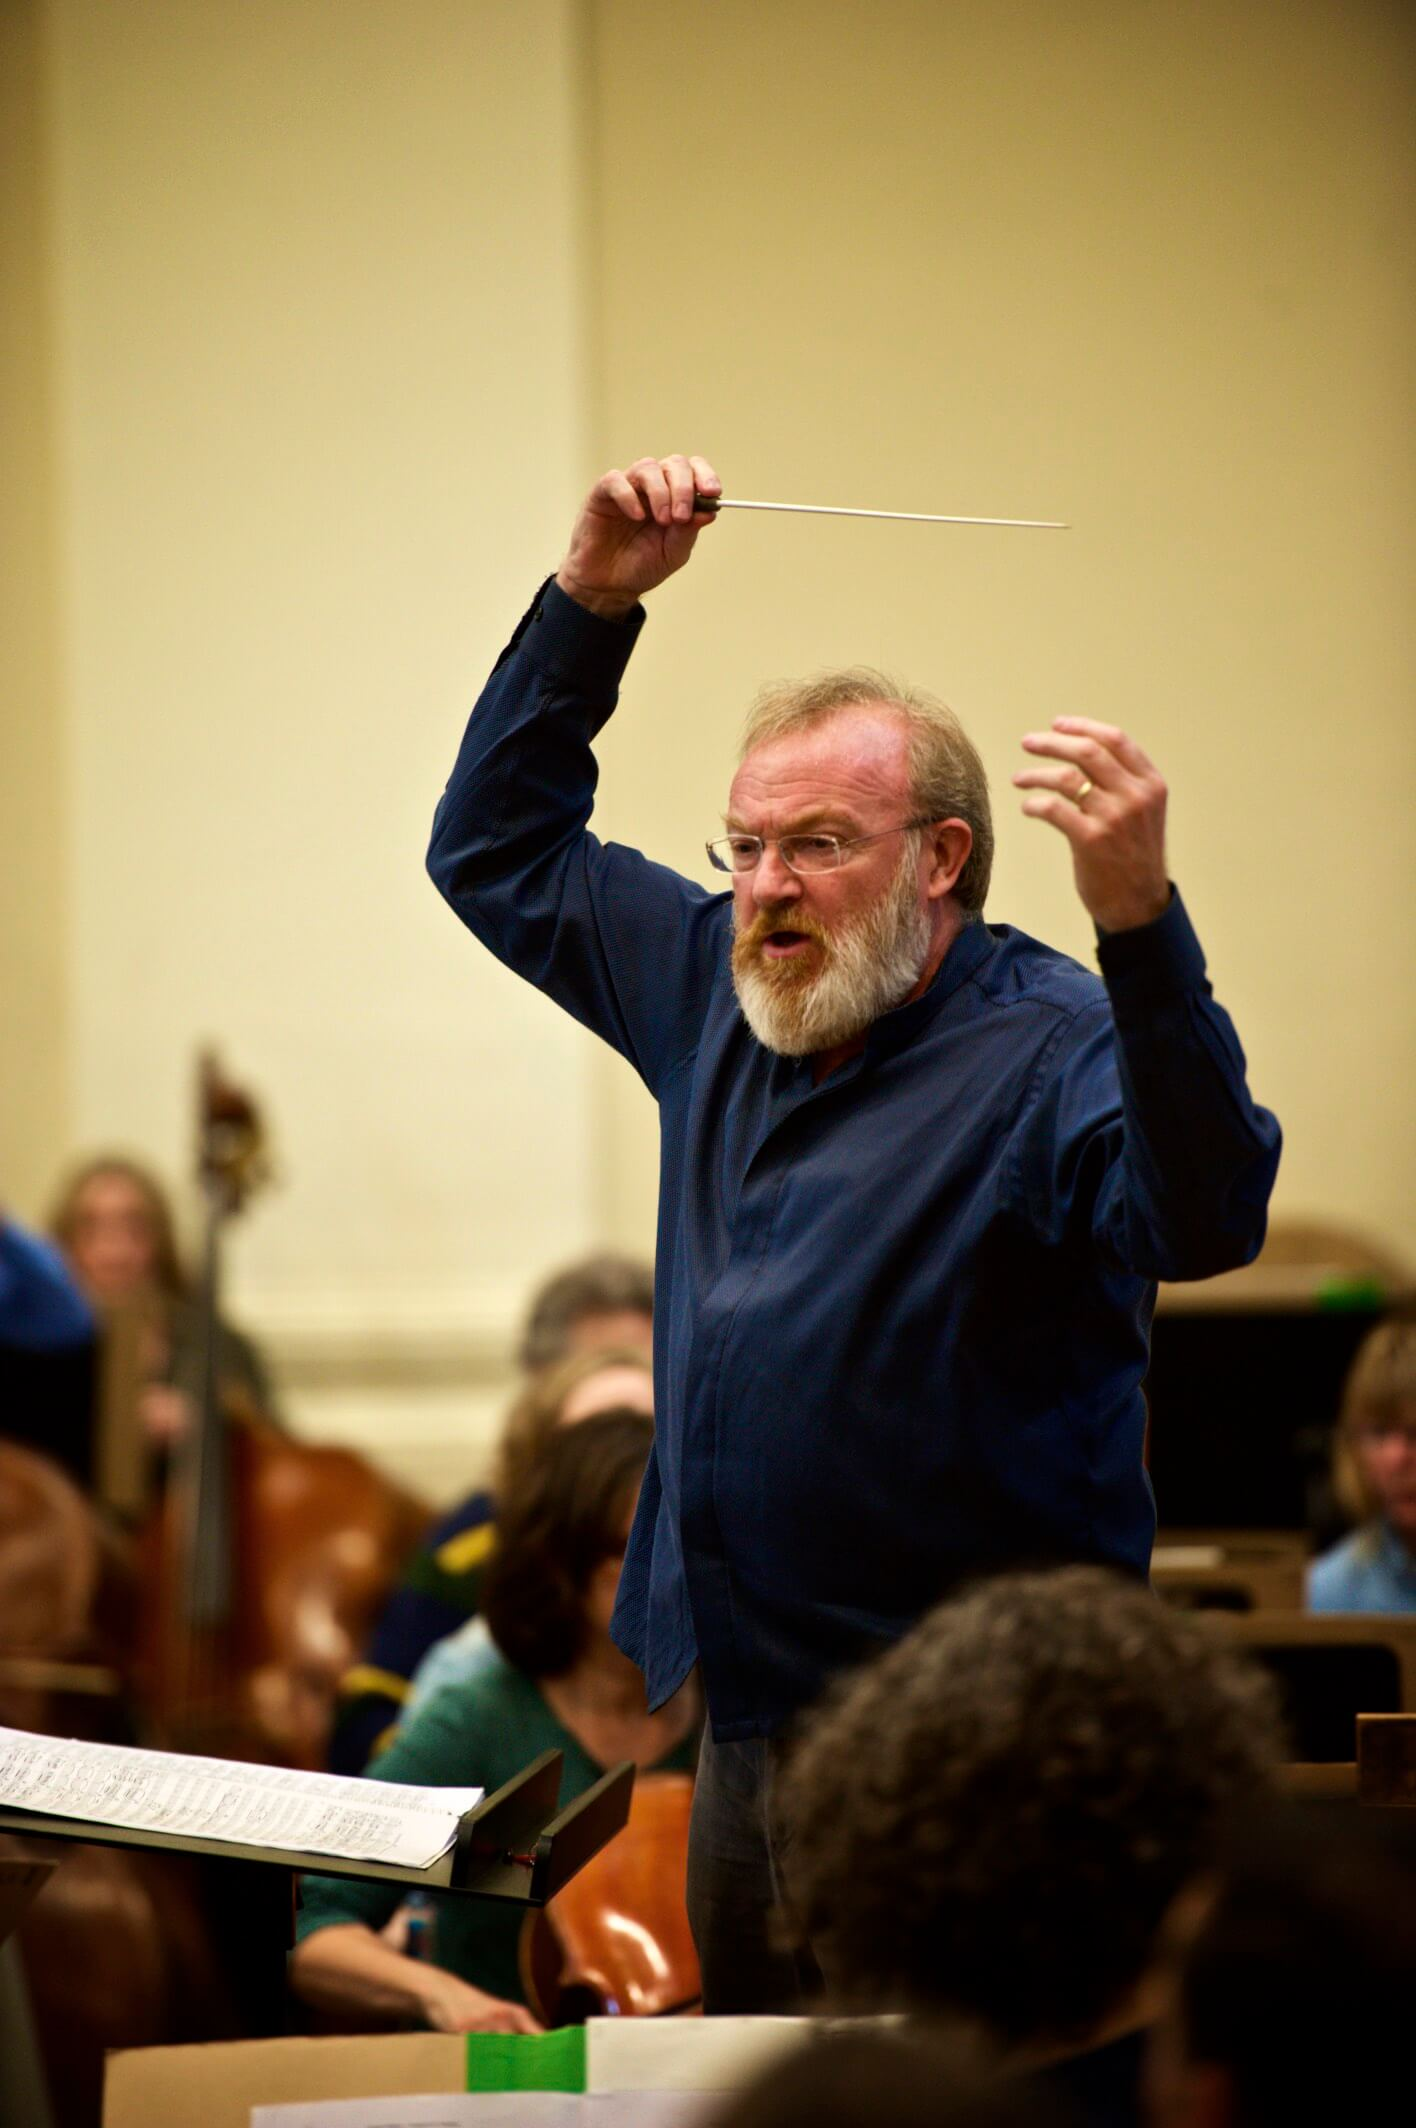 Internationally renowned musician Martyn Brabbins appointed Visiting Professor of Conducting Image